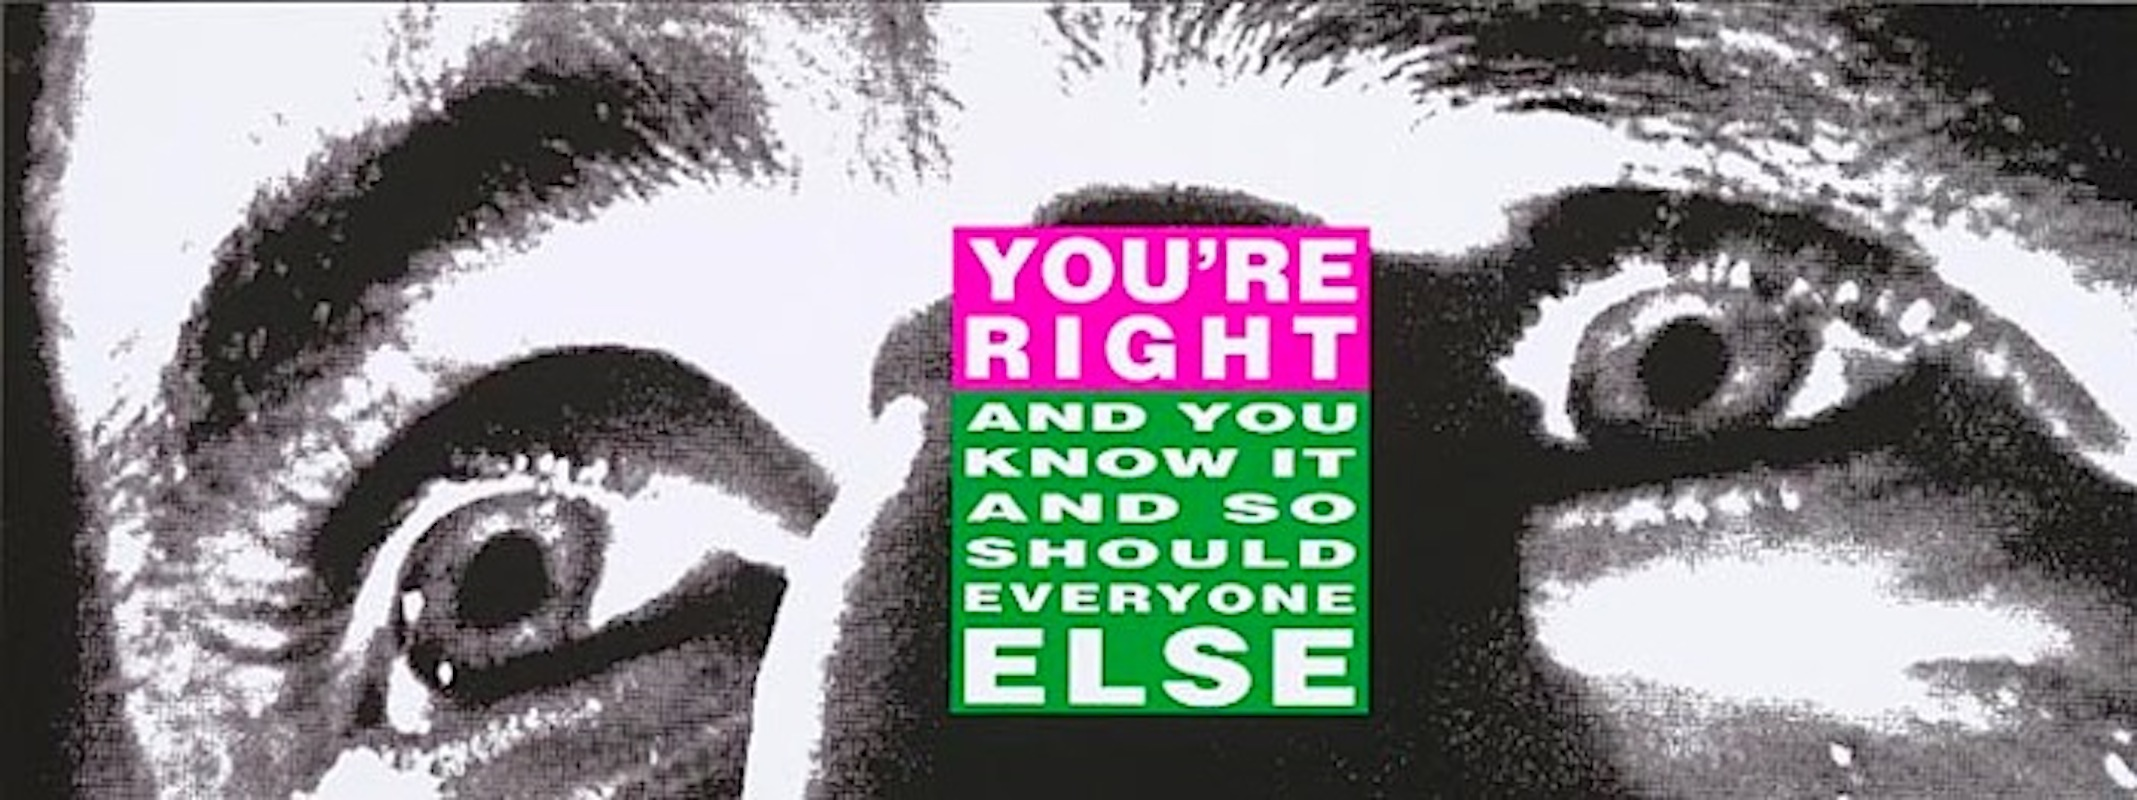 you re right and you know it barbara kruger gregg shienbaum fine art